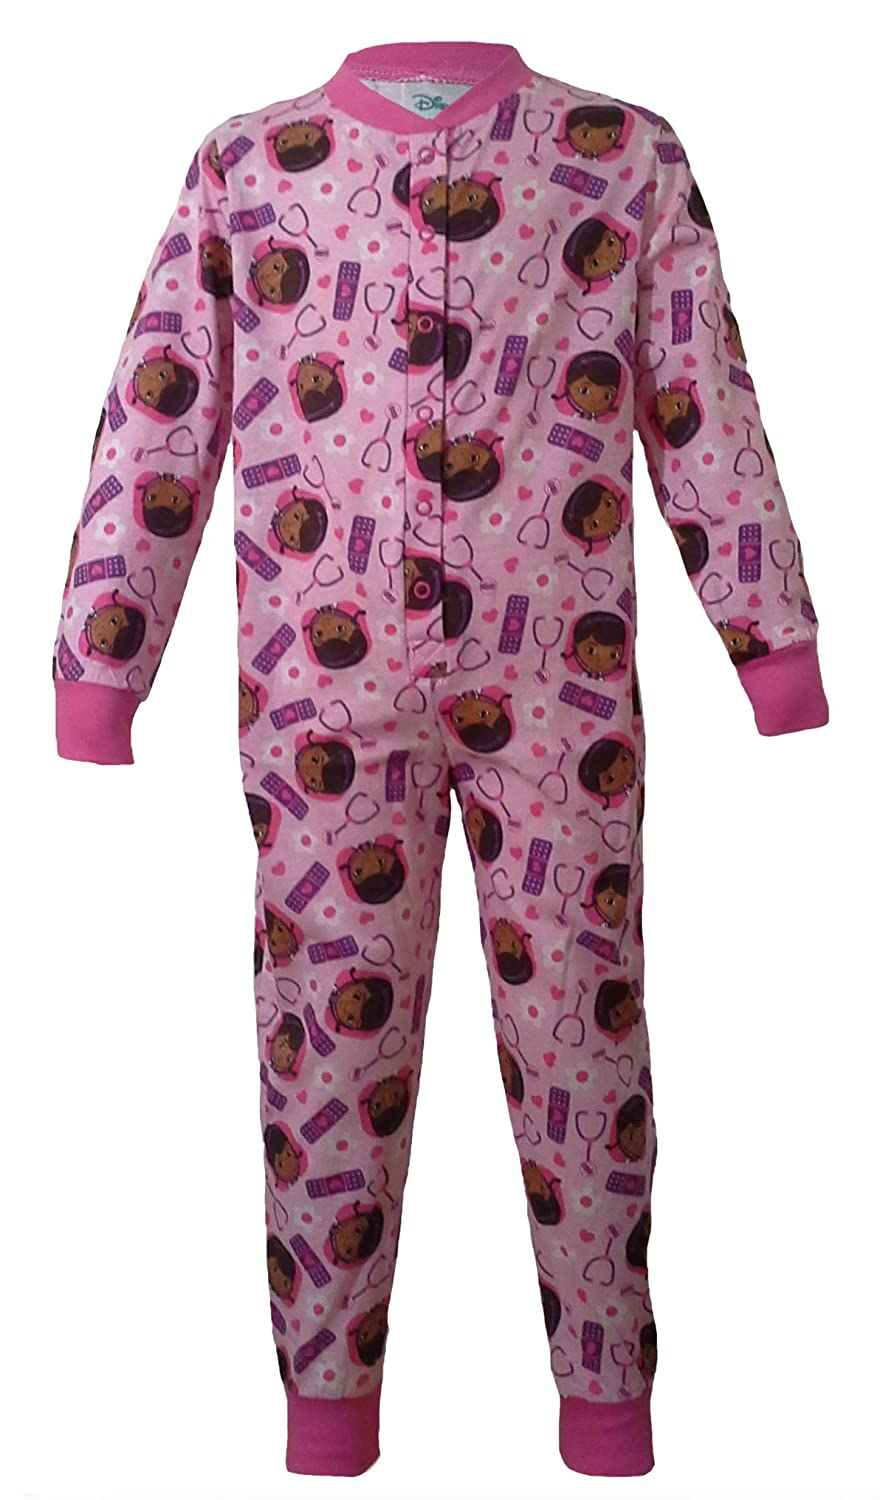 DISNEY ONESIE PYJAMAS SLEEPSUIT - PRINCESS, SOFIA, TINKERBELL, DOC MC STUFFINS - Girls - Cotton - Genuine with Authenticity Tags …